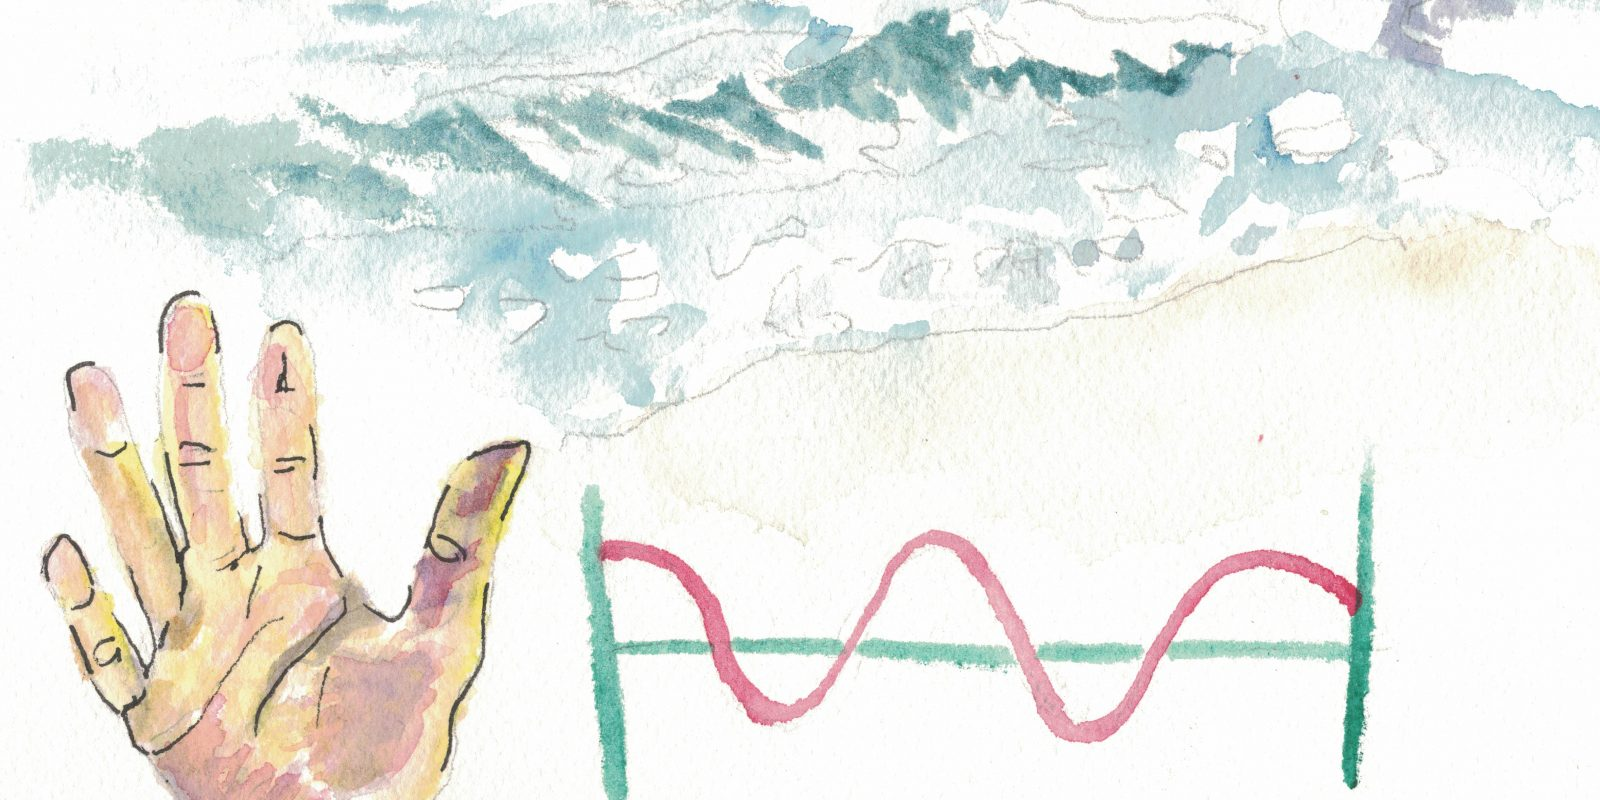 Wave is a homograph expressed with a hand gesture, ocean occurrence, and sound pattern.